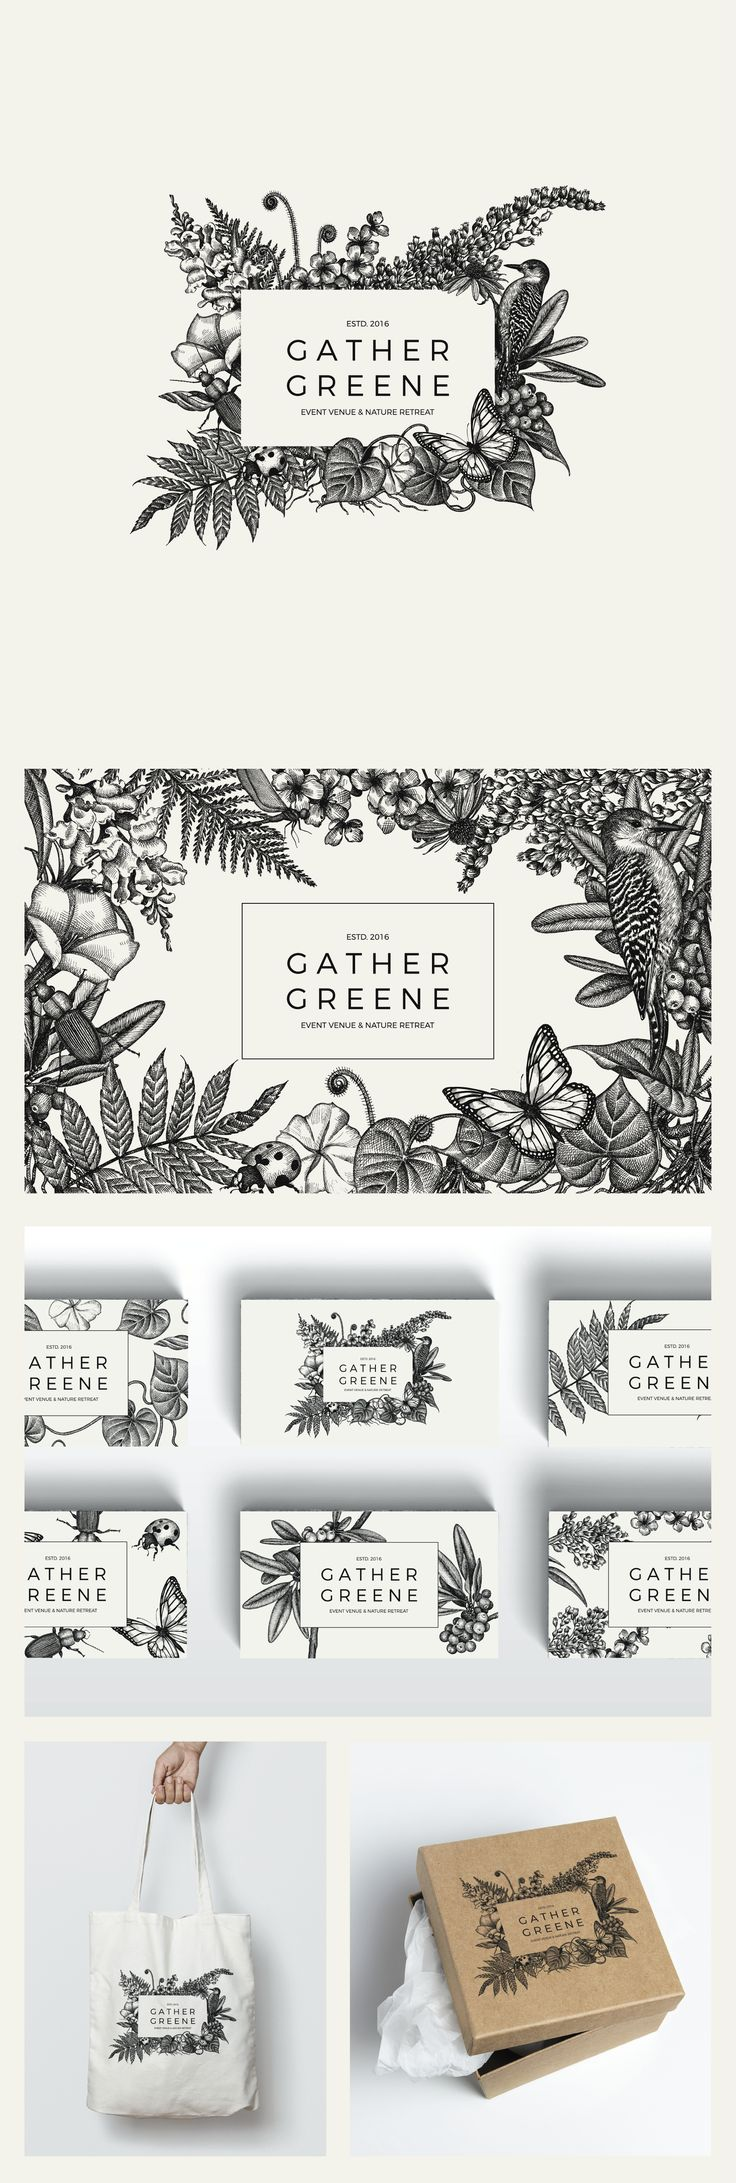 Gather Greene Branding